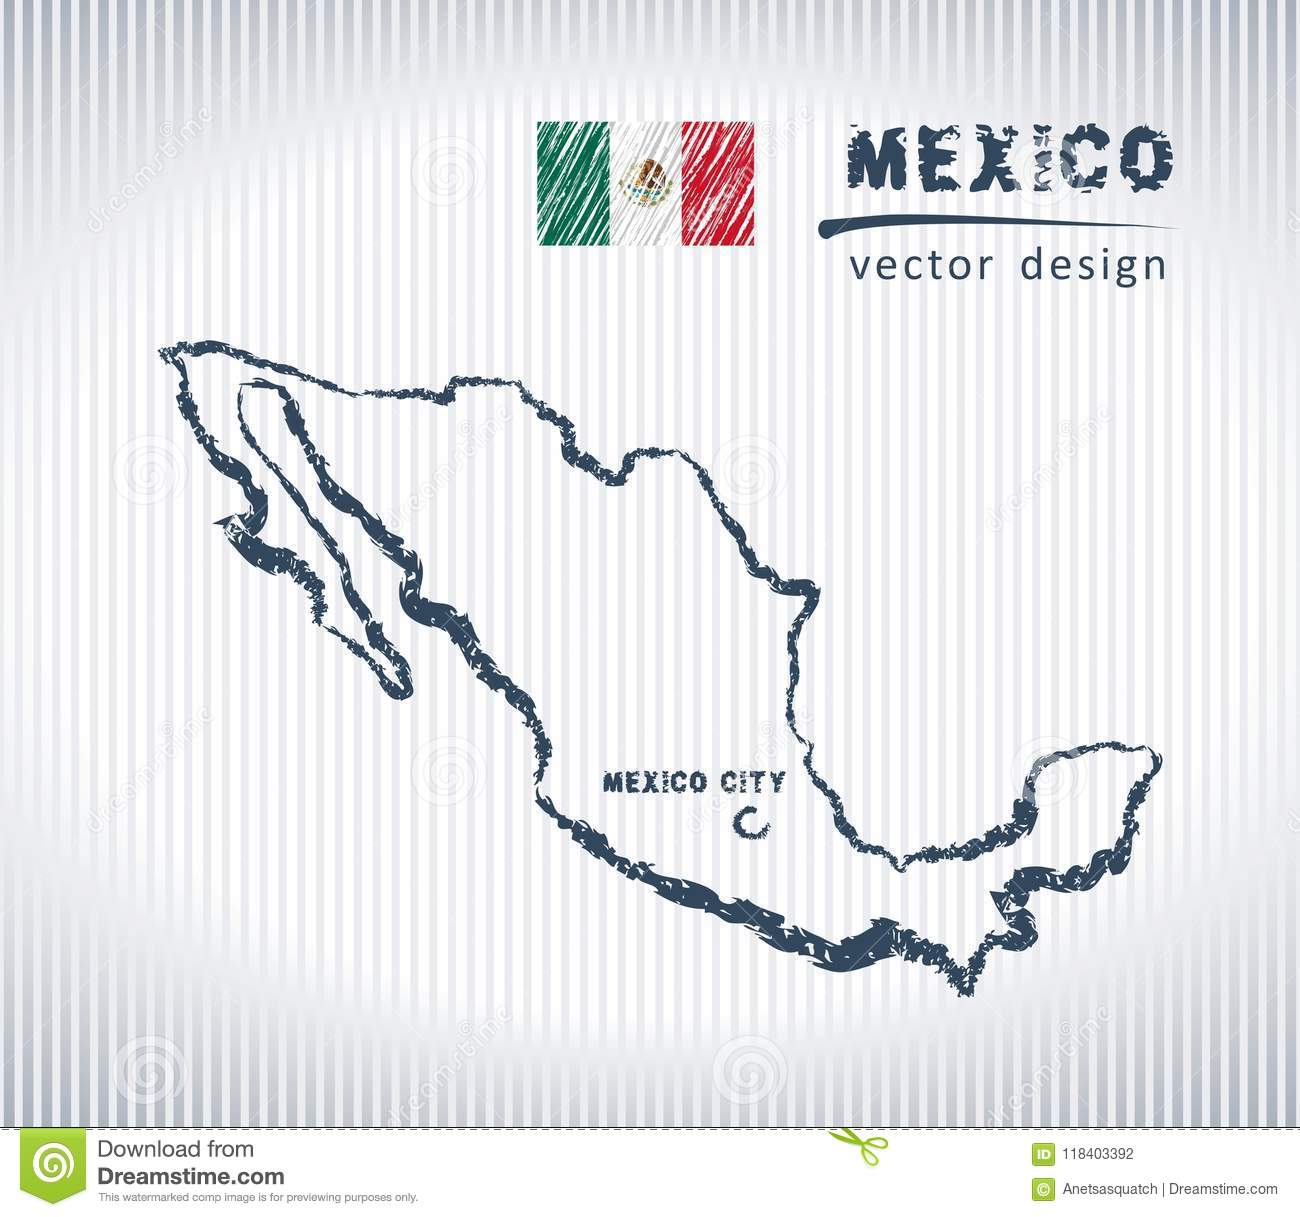 Mexico National Vector Drawing Map On White Background Stock ... on map of greece drawing, map of russia drawing, usa map drawing, map of world drawing, map of jamaica drawing, map of india drawing, map of germany drawing, map of france drawing, map of north america drawing, map of japan drawing, map spain drawing, map of virginia drawing, map of rome drawing, map of iraq drawing, map of south america drawing, map of arizona drawing, map of egypt drawing, map of florida drawing, map of asia drawing, map of quebec drawing,